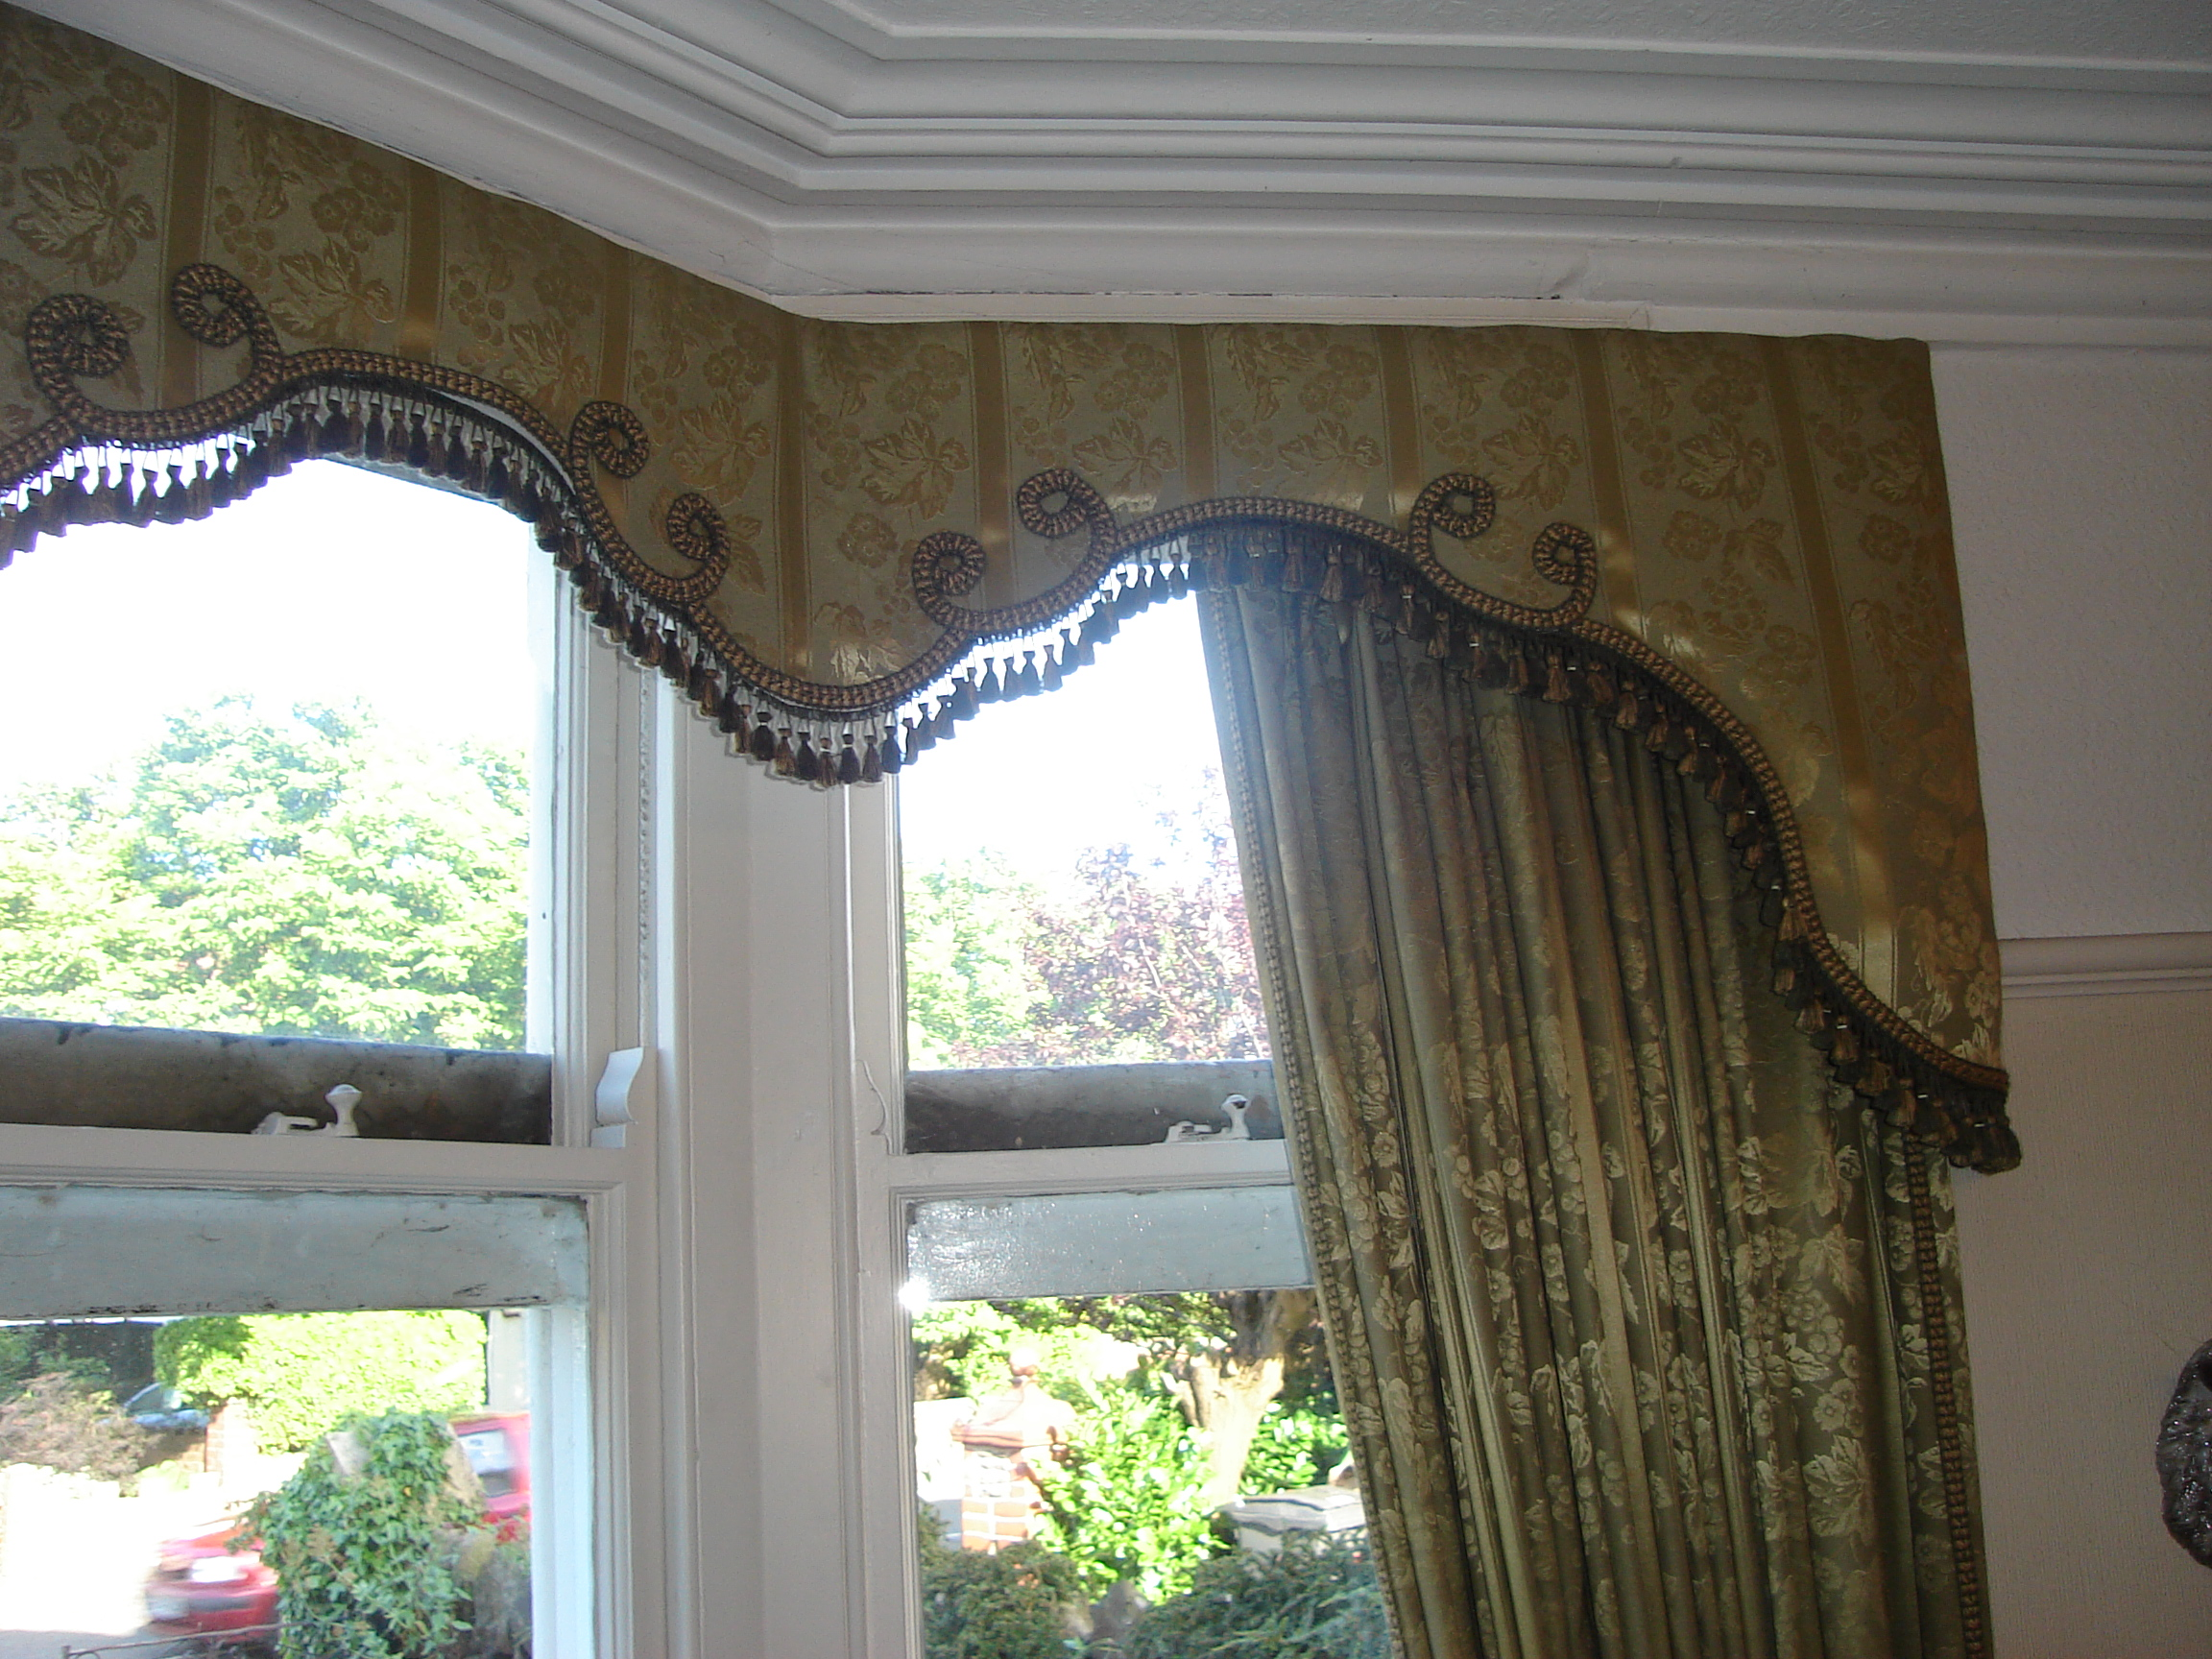 ornate olive green pelmet and curtains with braid trim